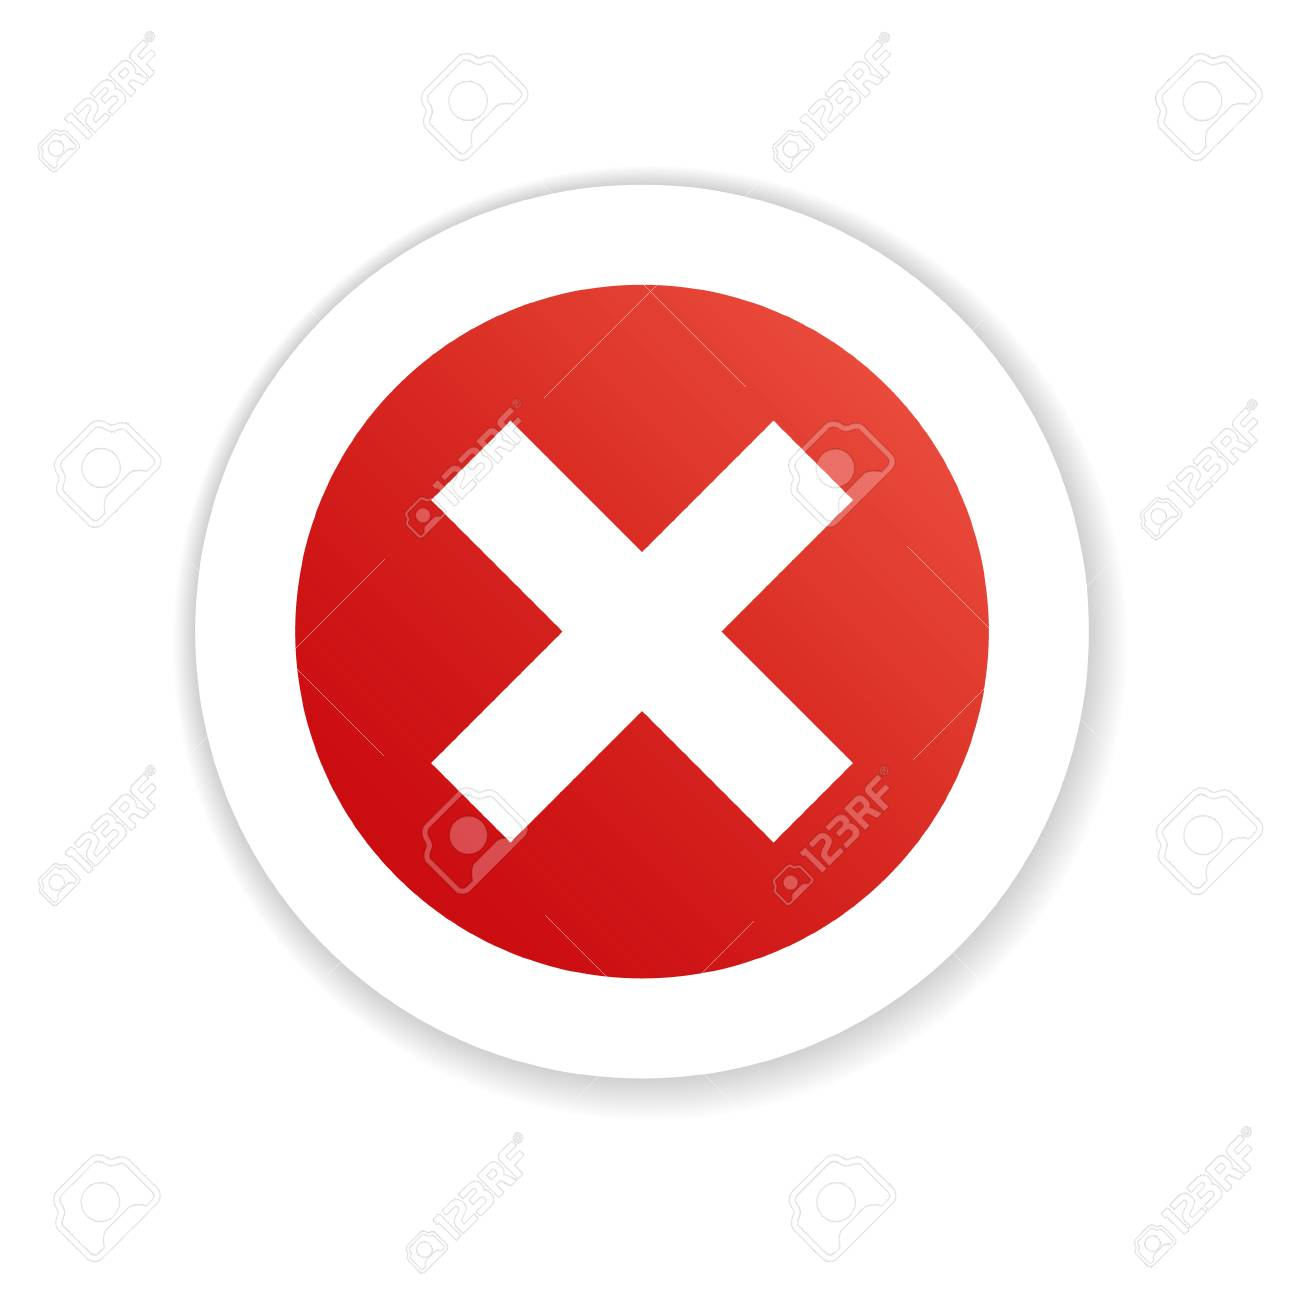 Cross Symbol Negative Red Flat Shadow Button